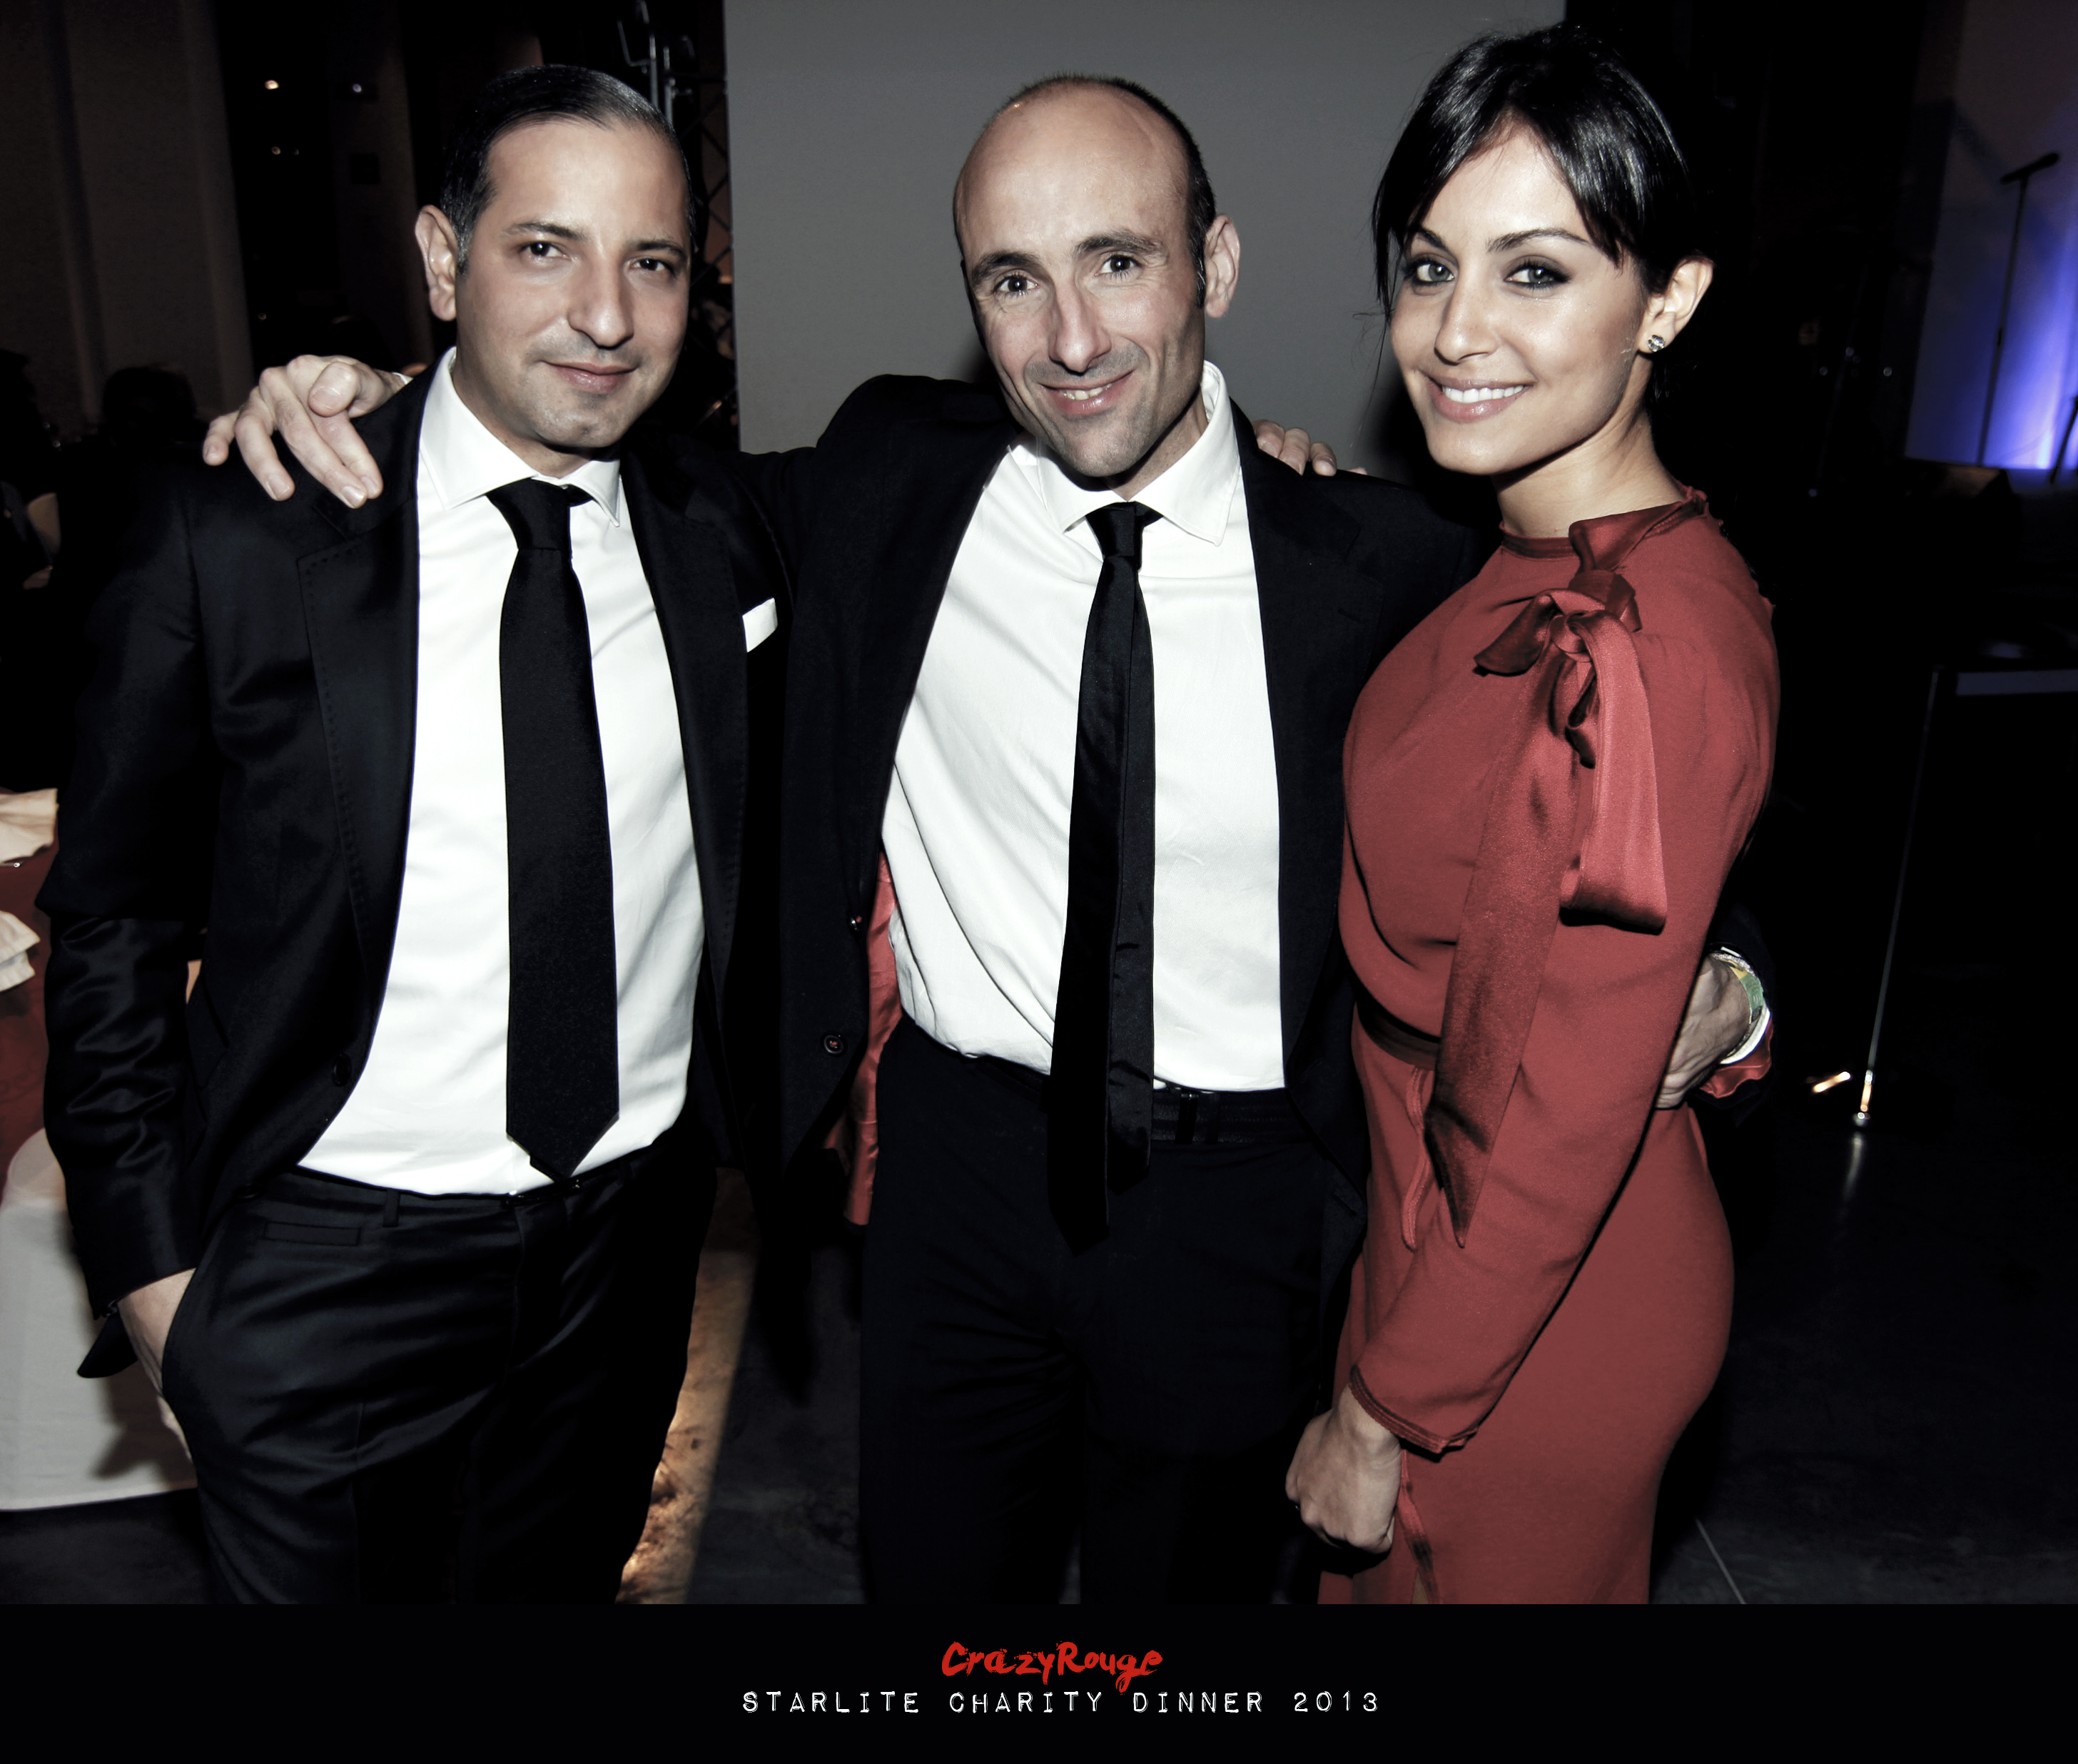 Crazy Rouge+21 Starlite Charity Dinner 2013+Hiba Abouk